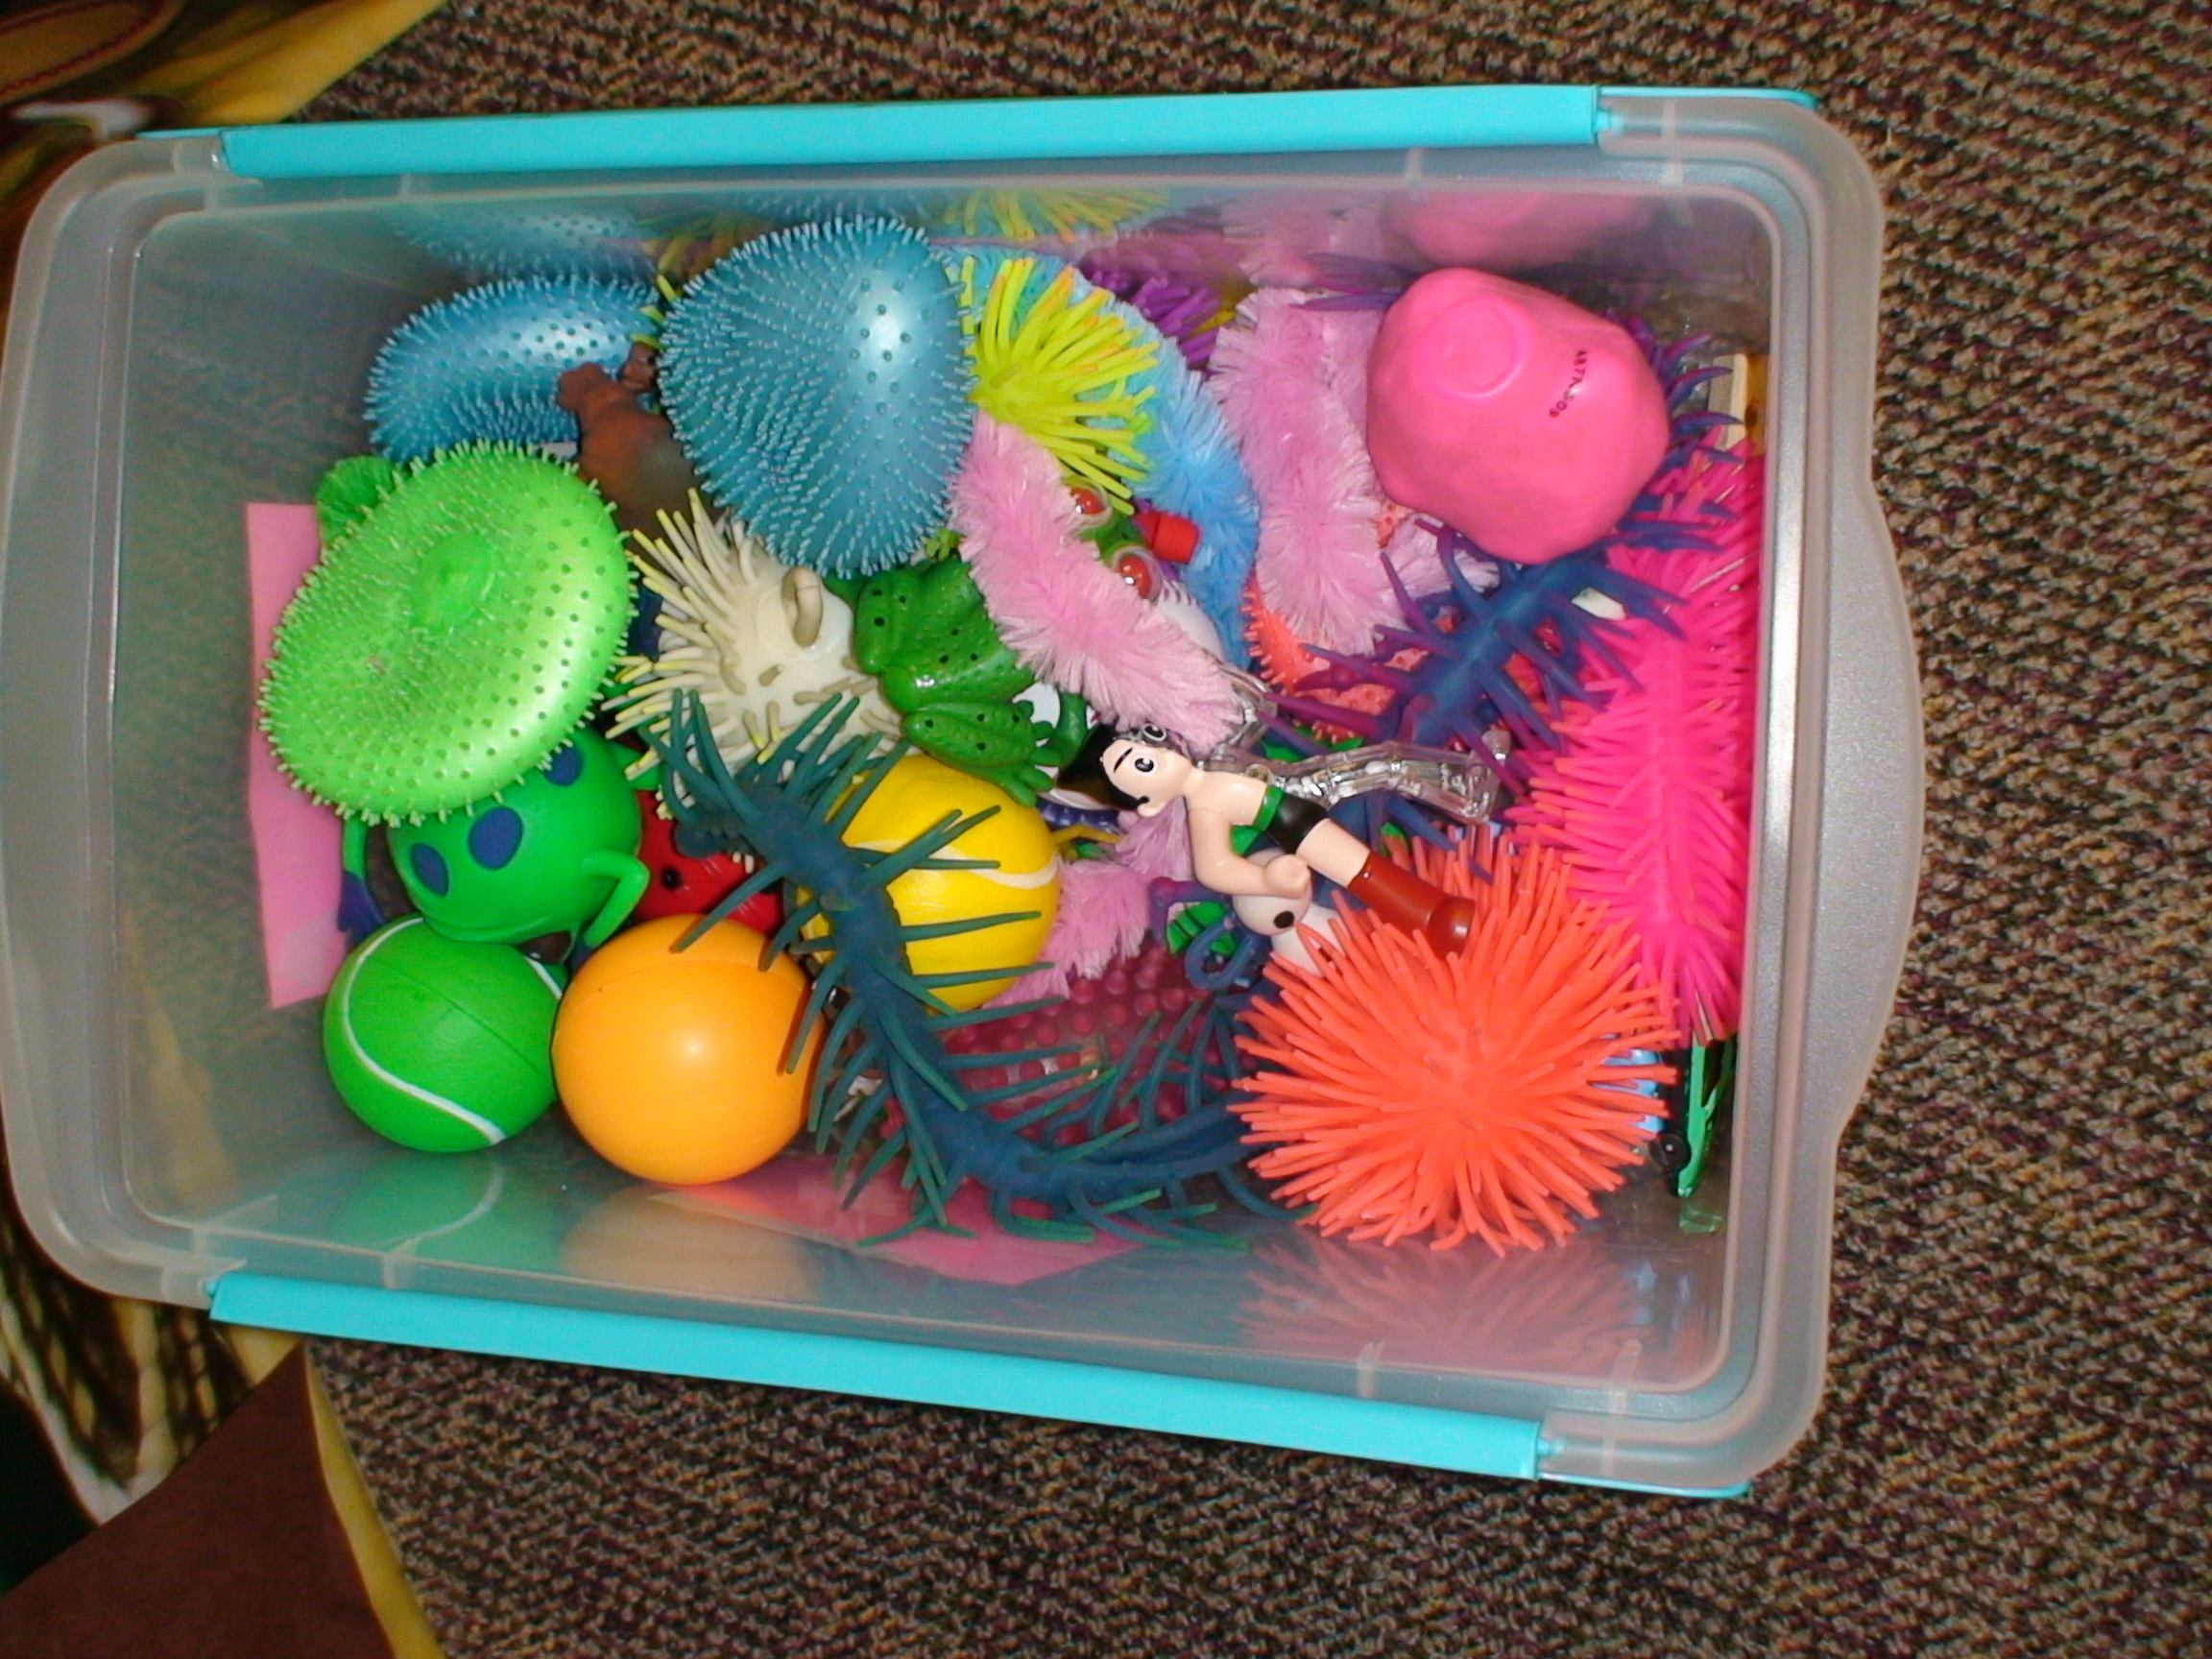 Sensory Toys For Adults : Providing a sensory toy box and how slinky can help